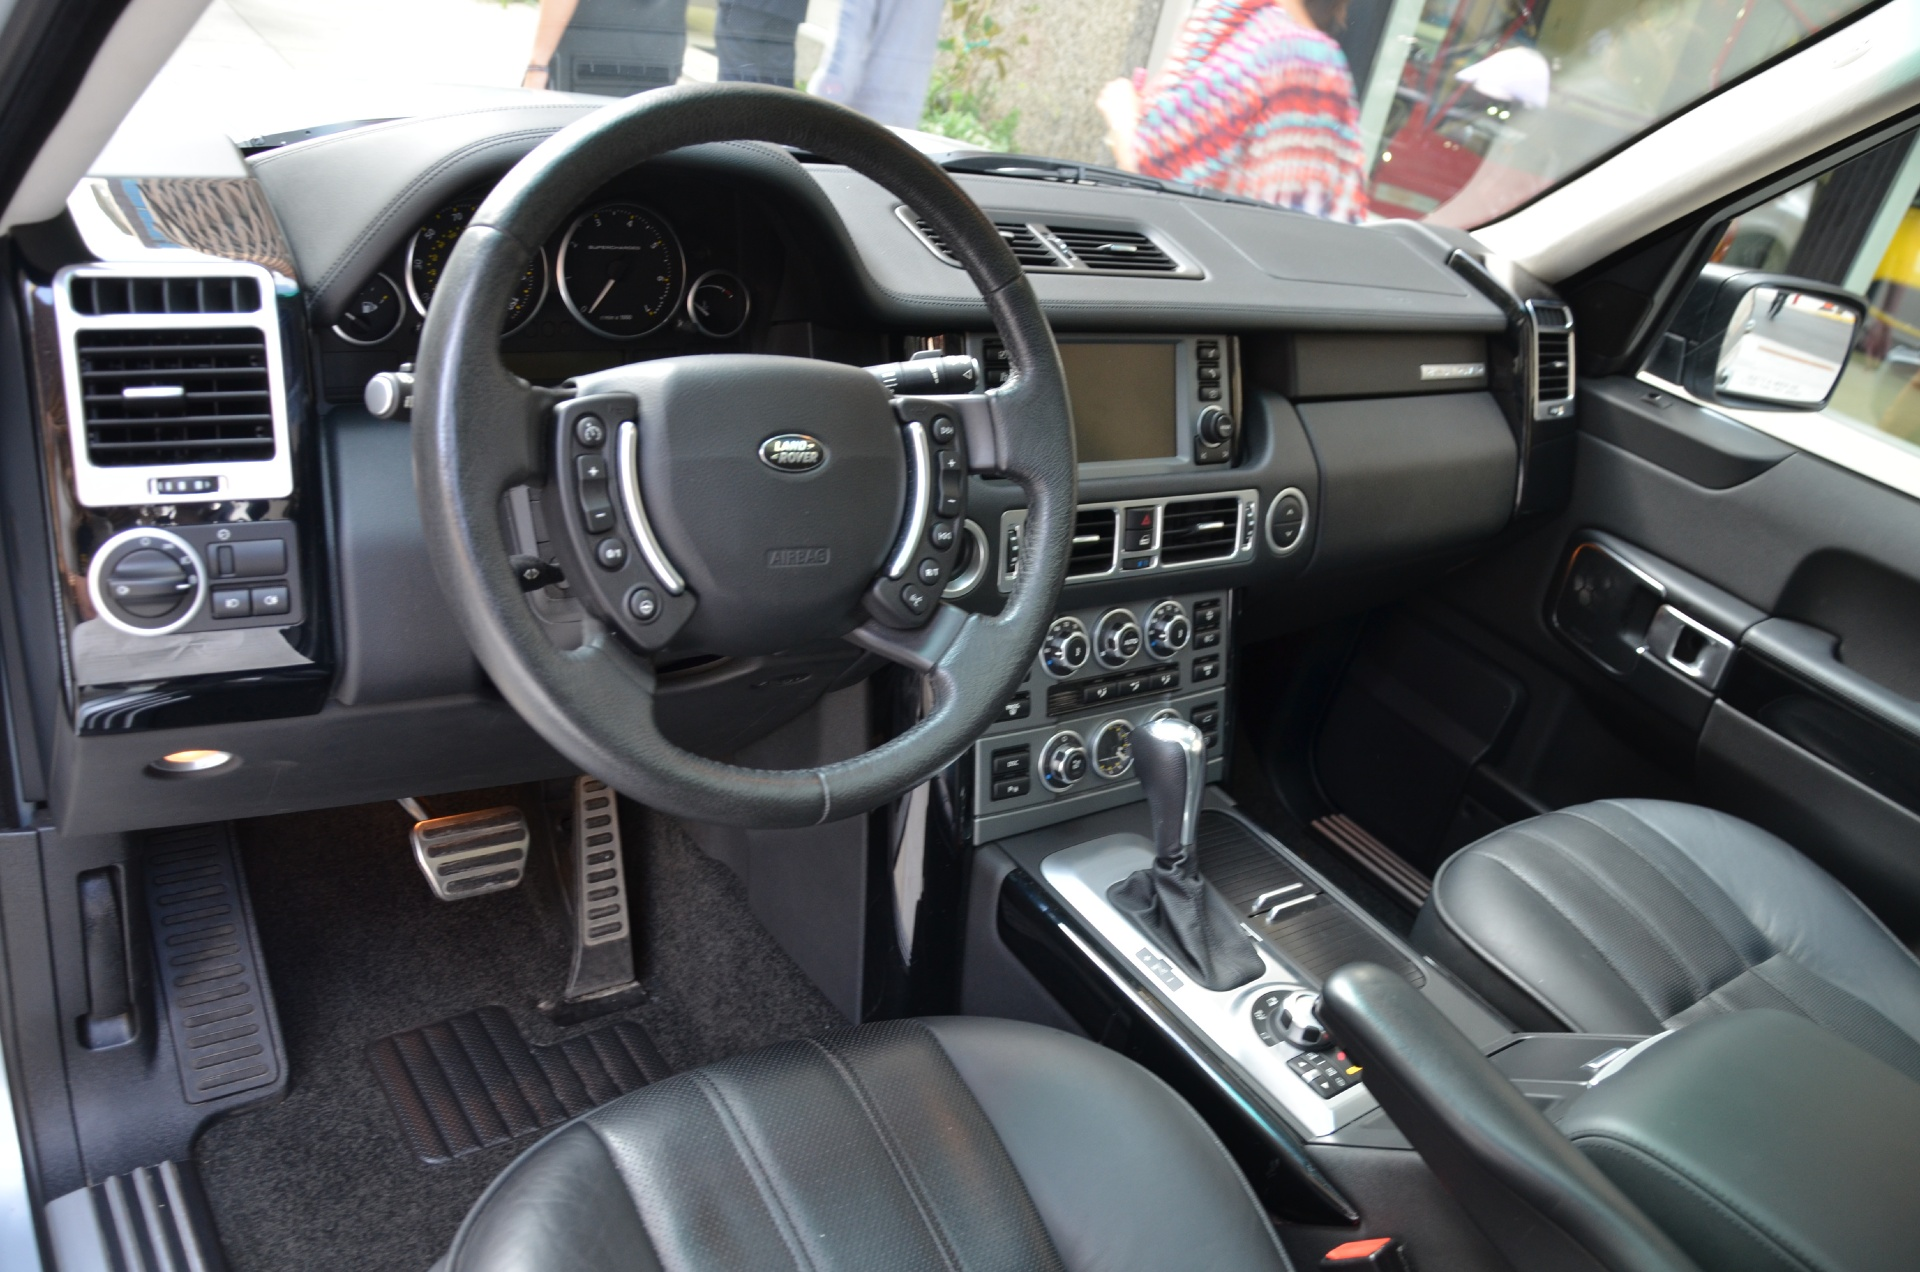 2007 Land Rover Range Rover Supercharged Stock GC1779A for sale